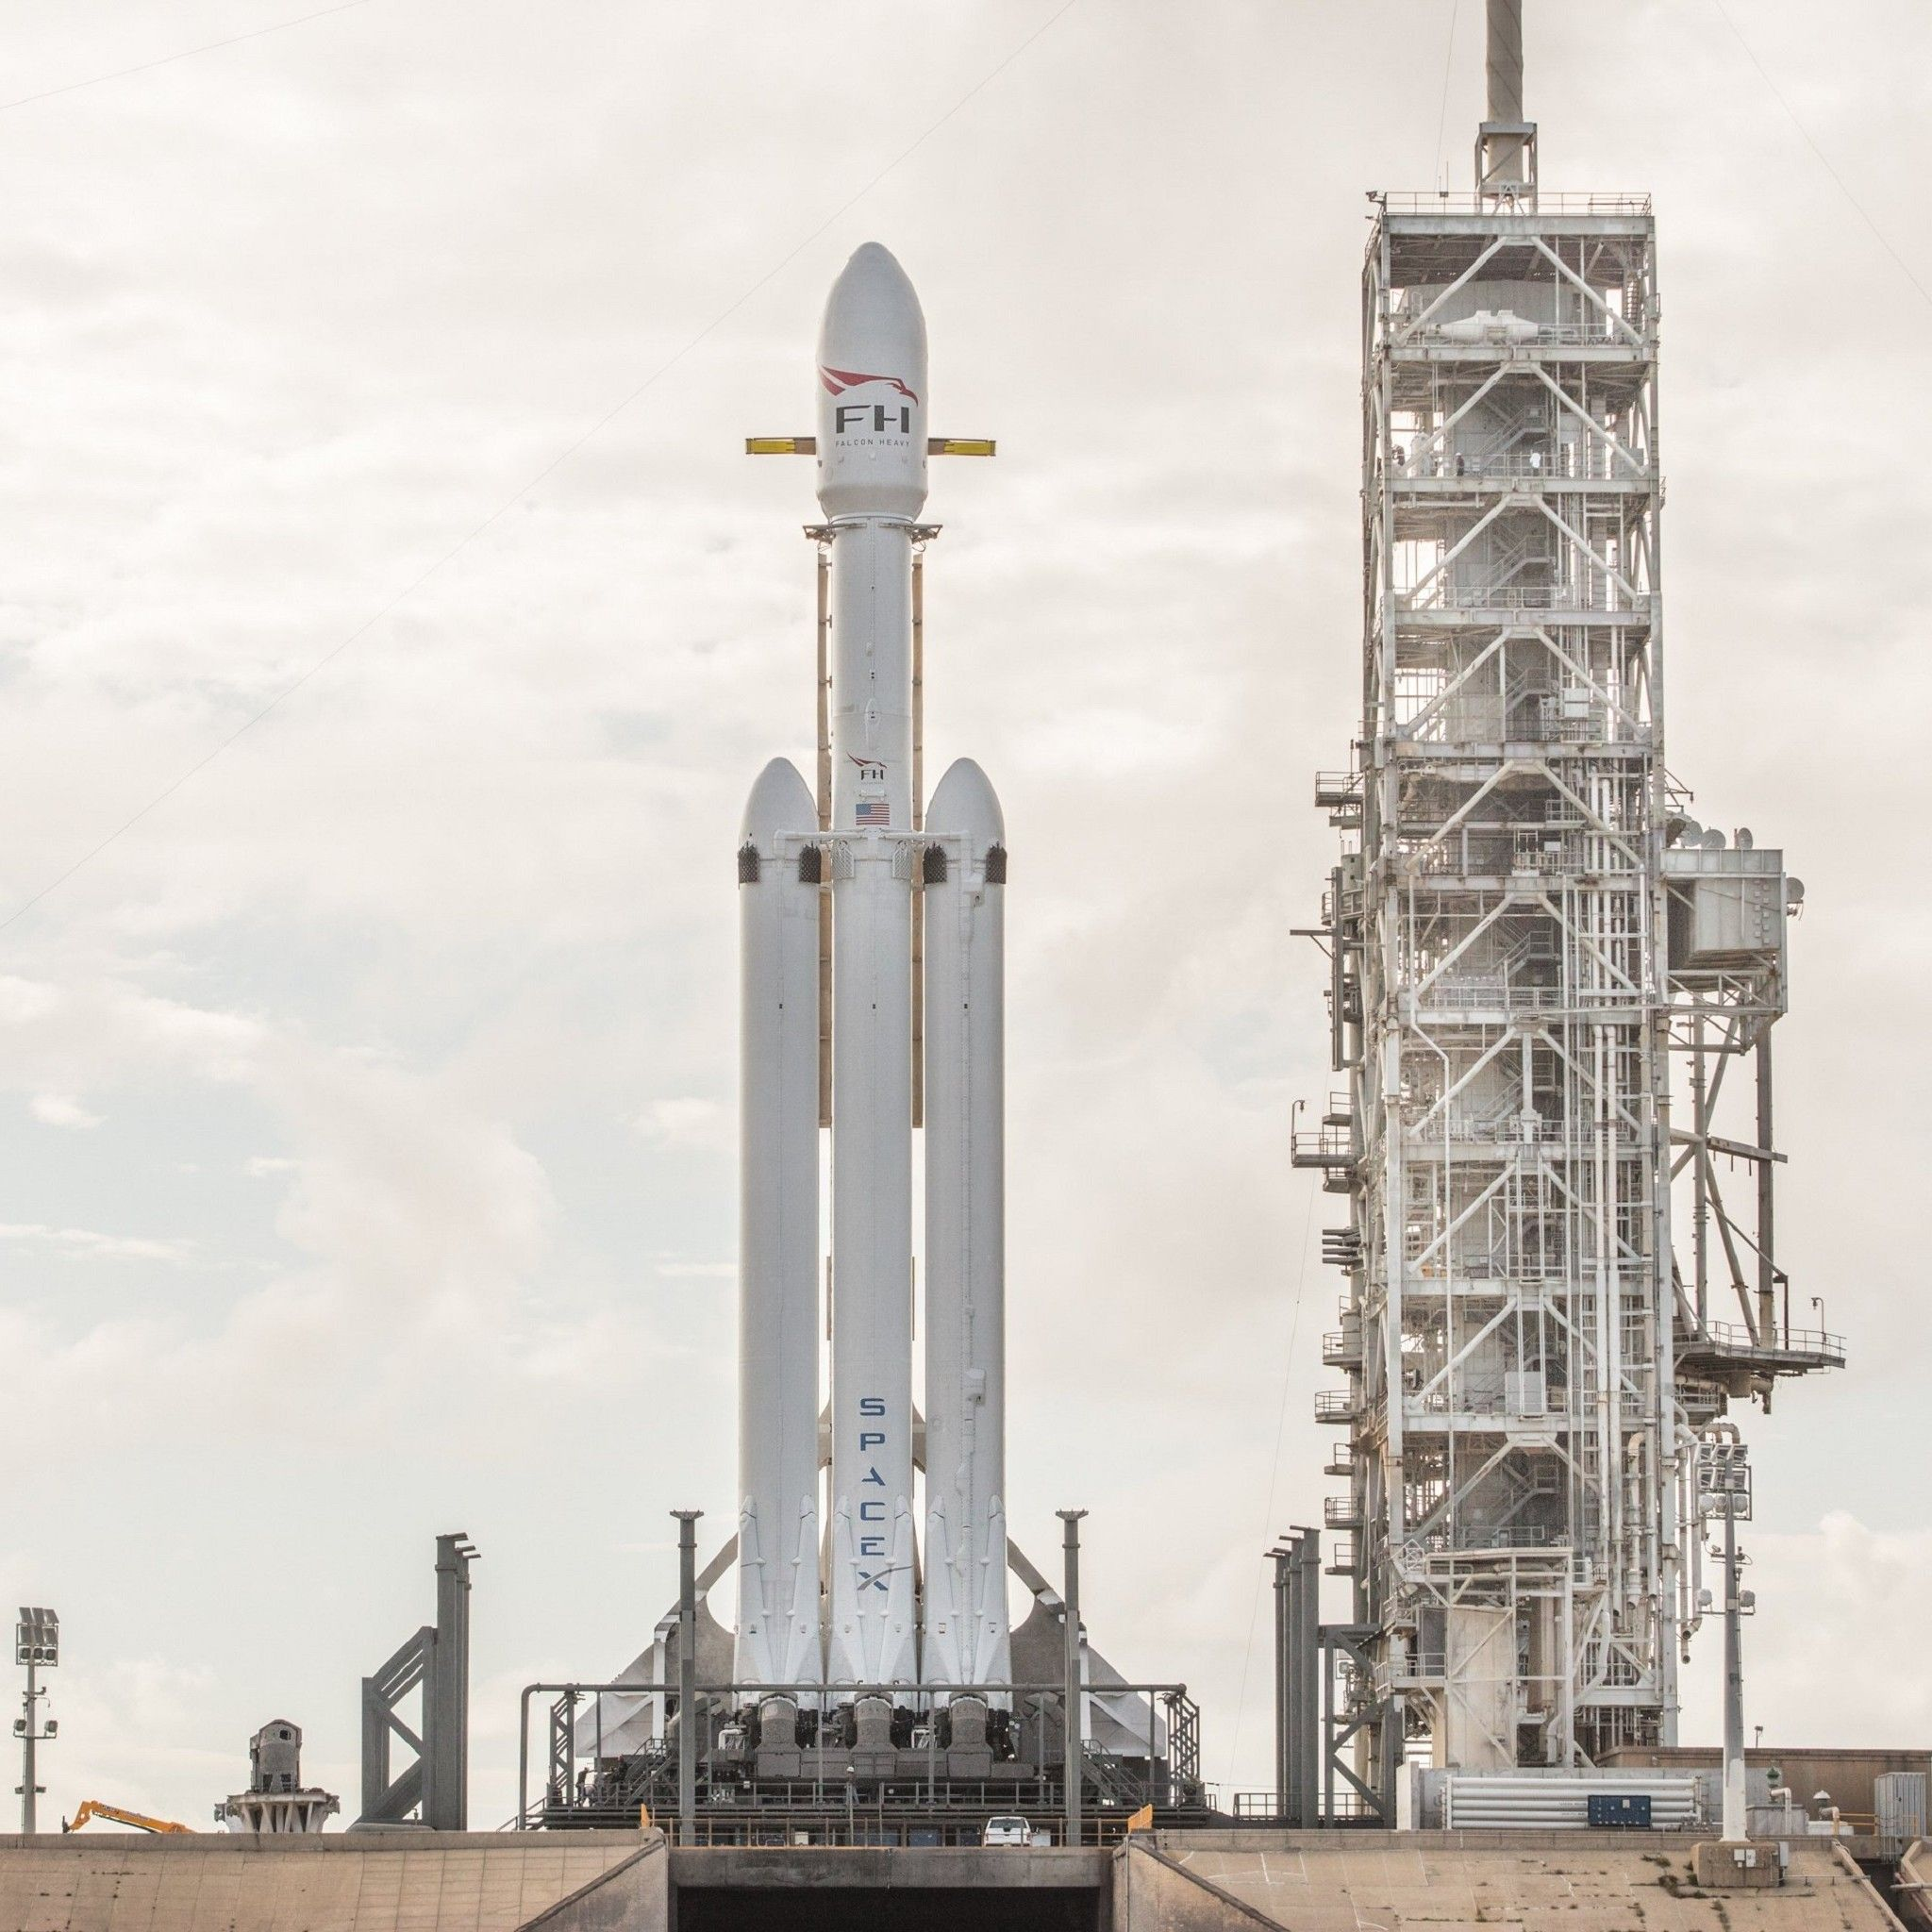 Spacex Falcon Heavy Looks Like It S Ready To Go Tap Image To See More Space X Wallpapers Mobile9 Spacex Falcon Heavy Spacex Falcon Heavy